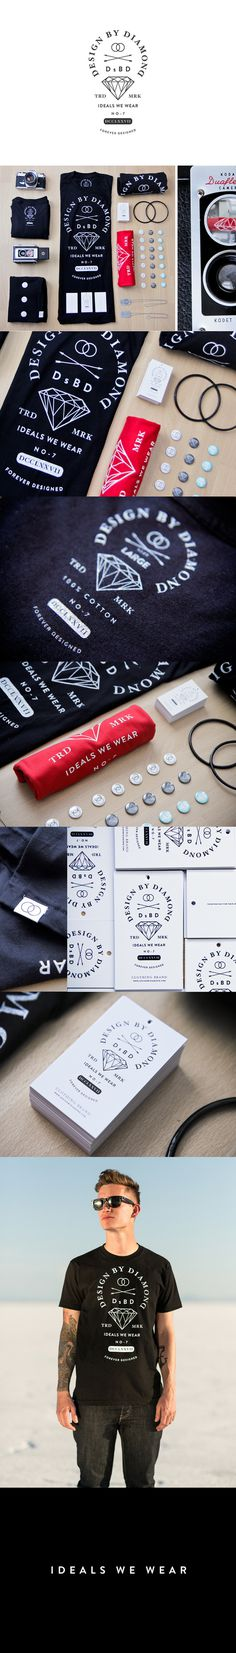 Ideals_we_wear_dribbble_detail